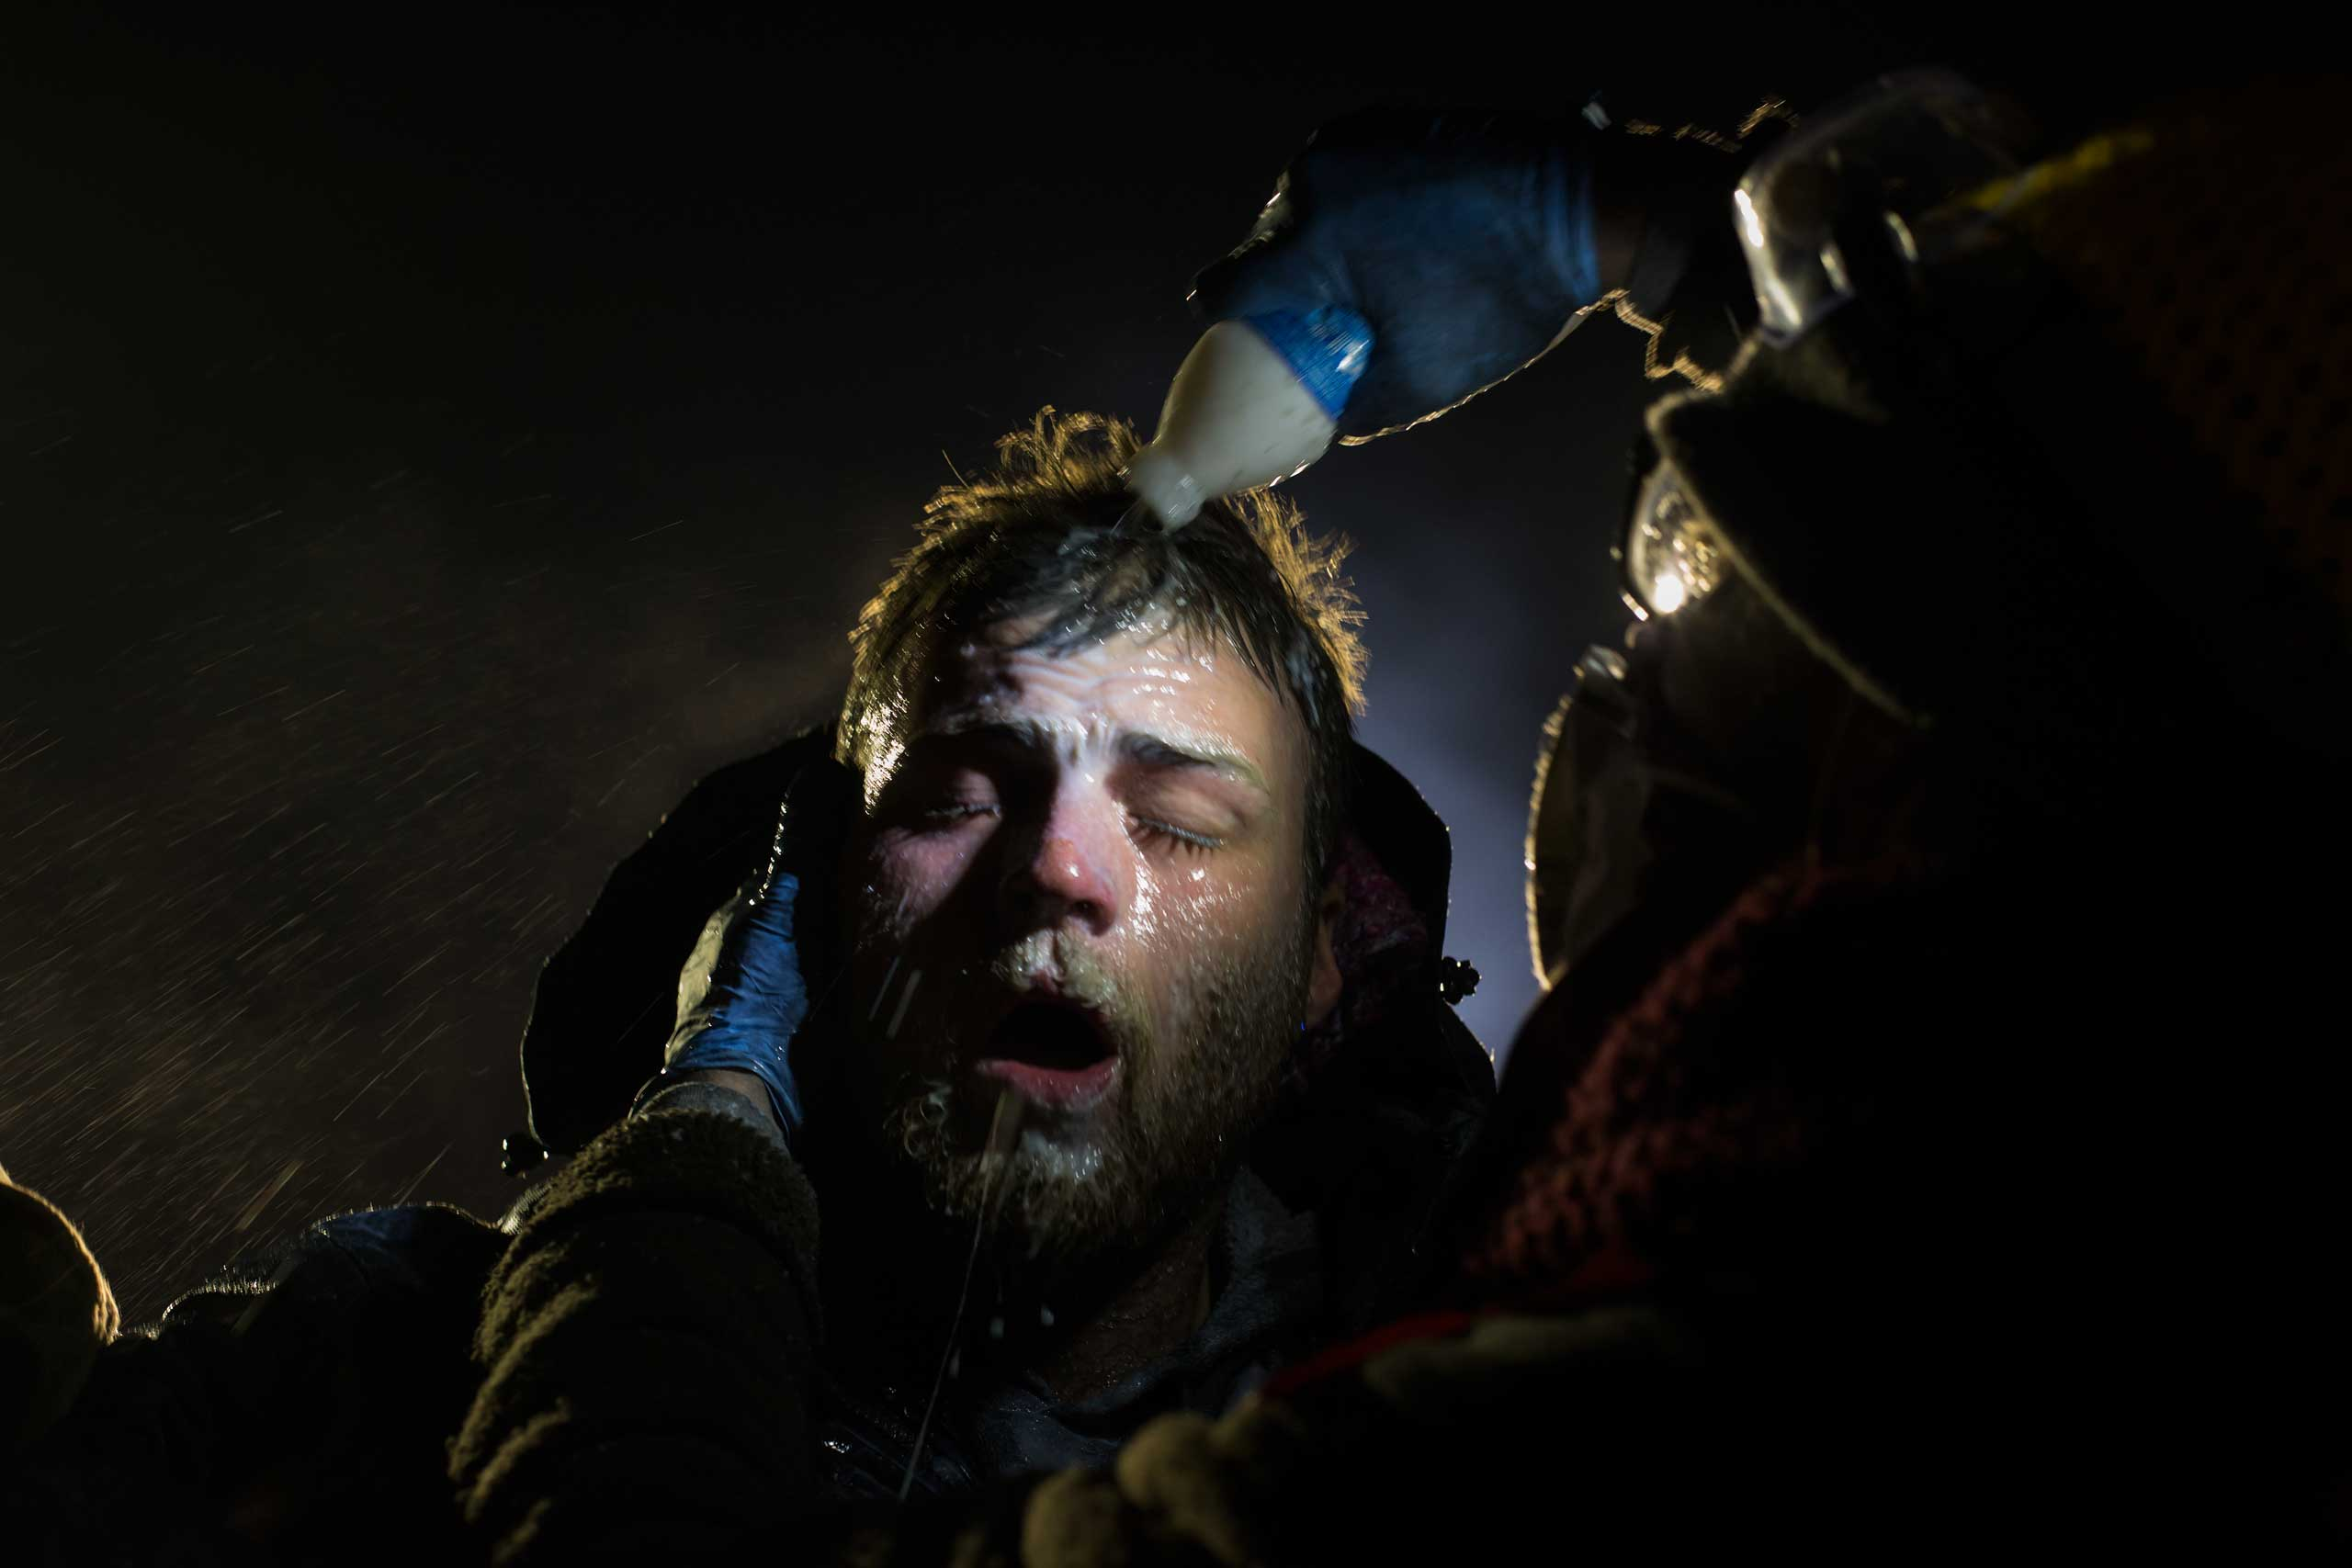 Healers - A man is treated after being pepper sprayed by police. White people have joined the camps in large numbers, often standing in front of indigenous protestors to shield them with their bodies.